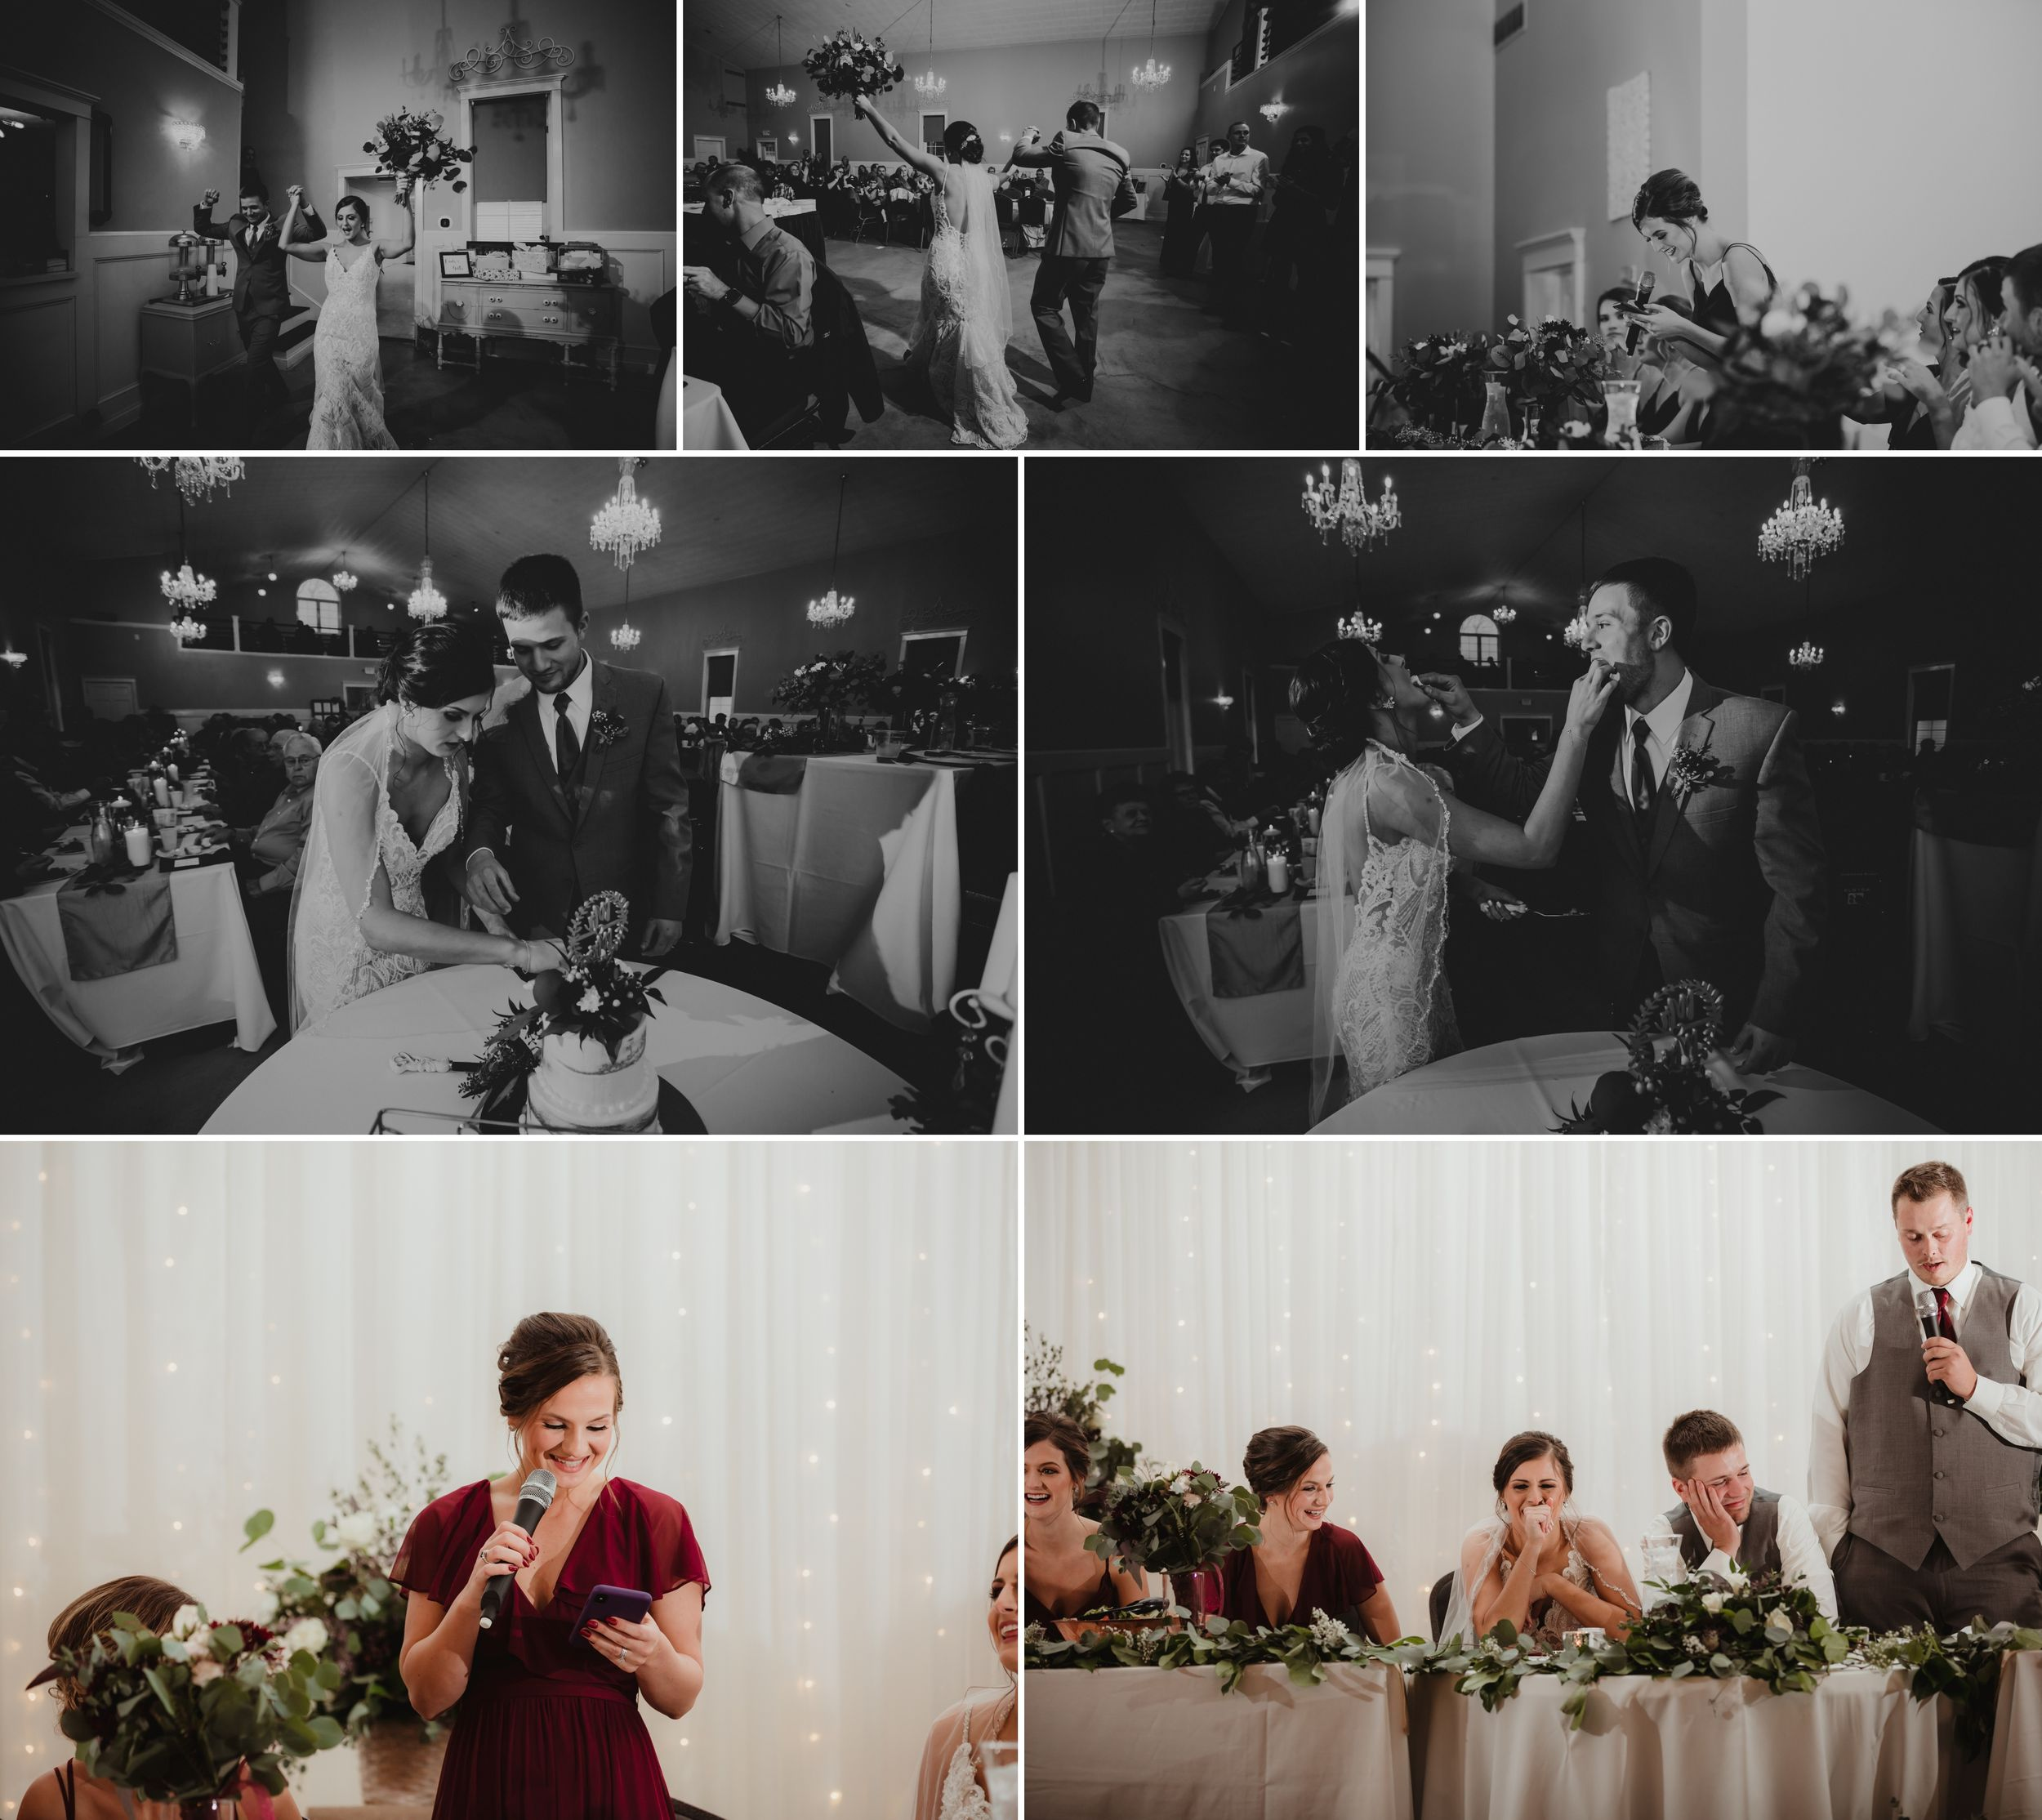 Collage of the bride and groom's entrance, cake cutting, and toasts.